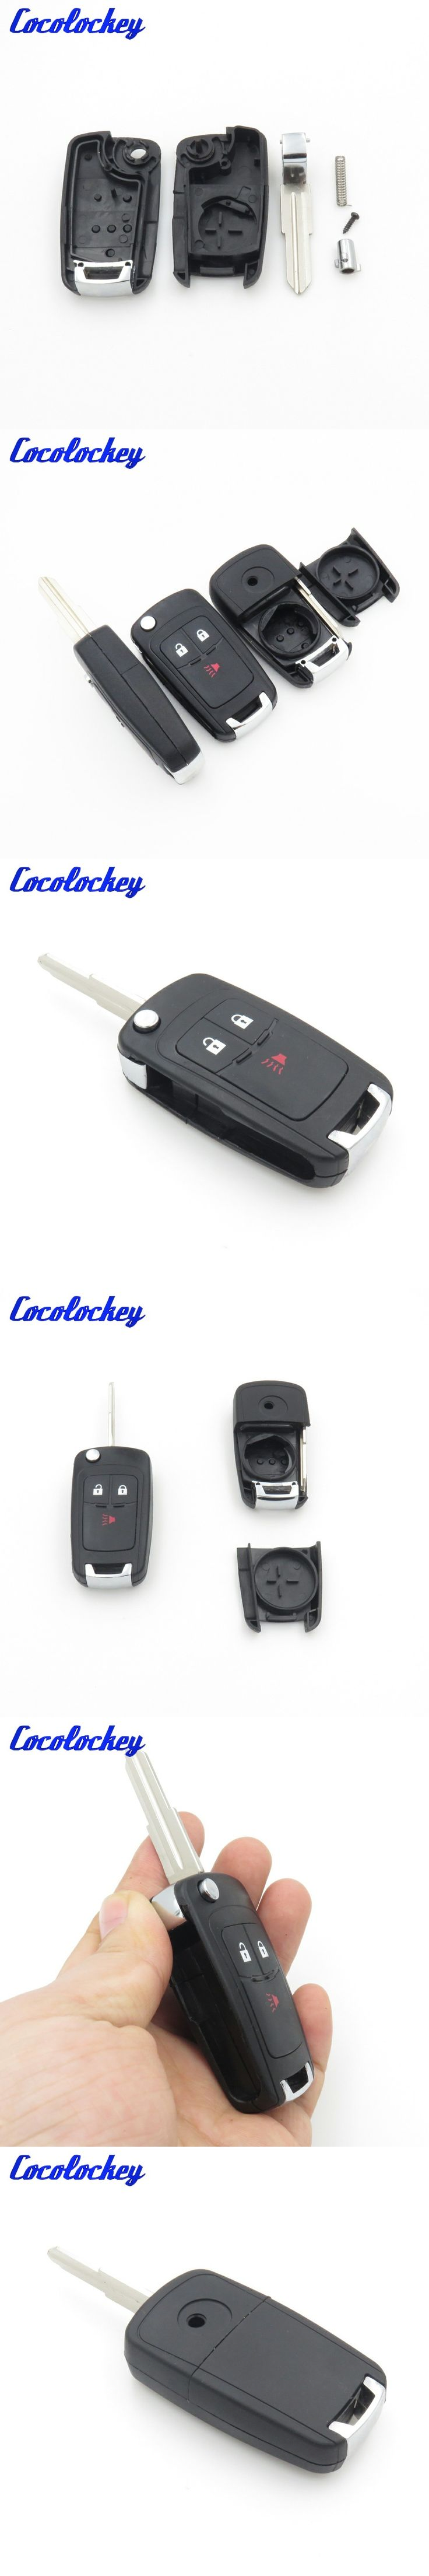 Cocolockey Entry Folding Flip Remote Car Key Shell Fit for CHEVROLET Spark Car Replacement Blank Key Fob 3 Buttons